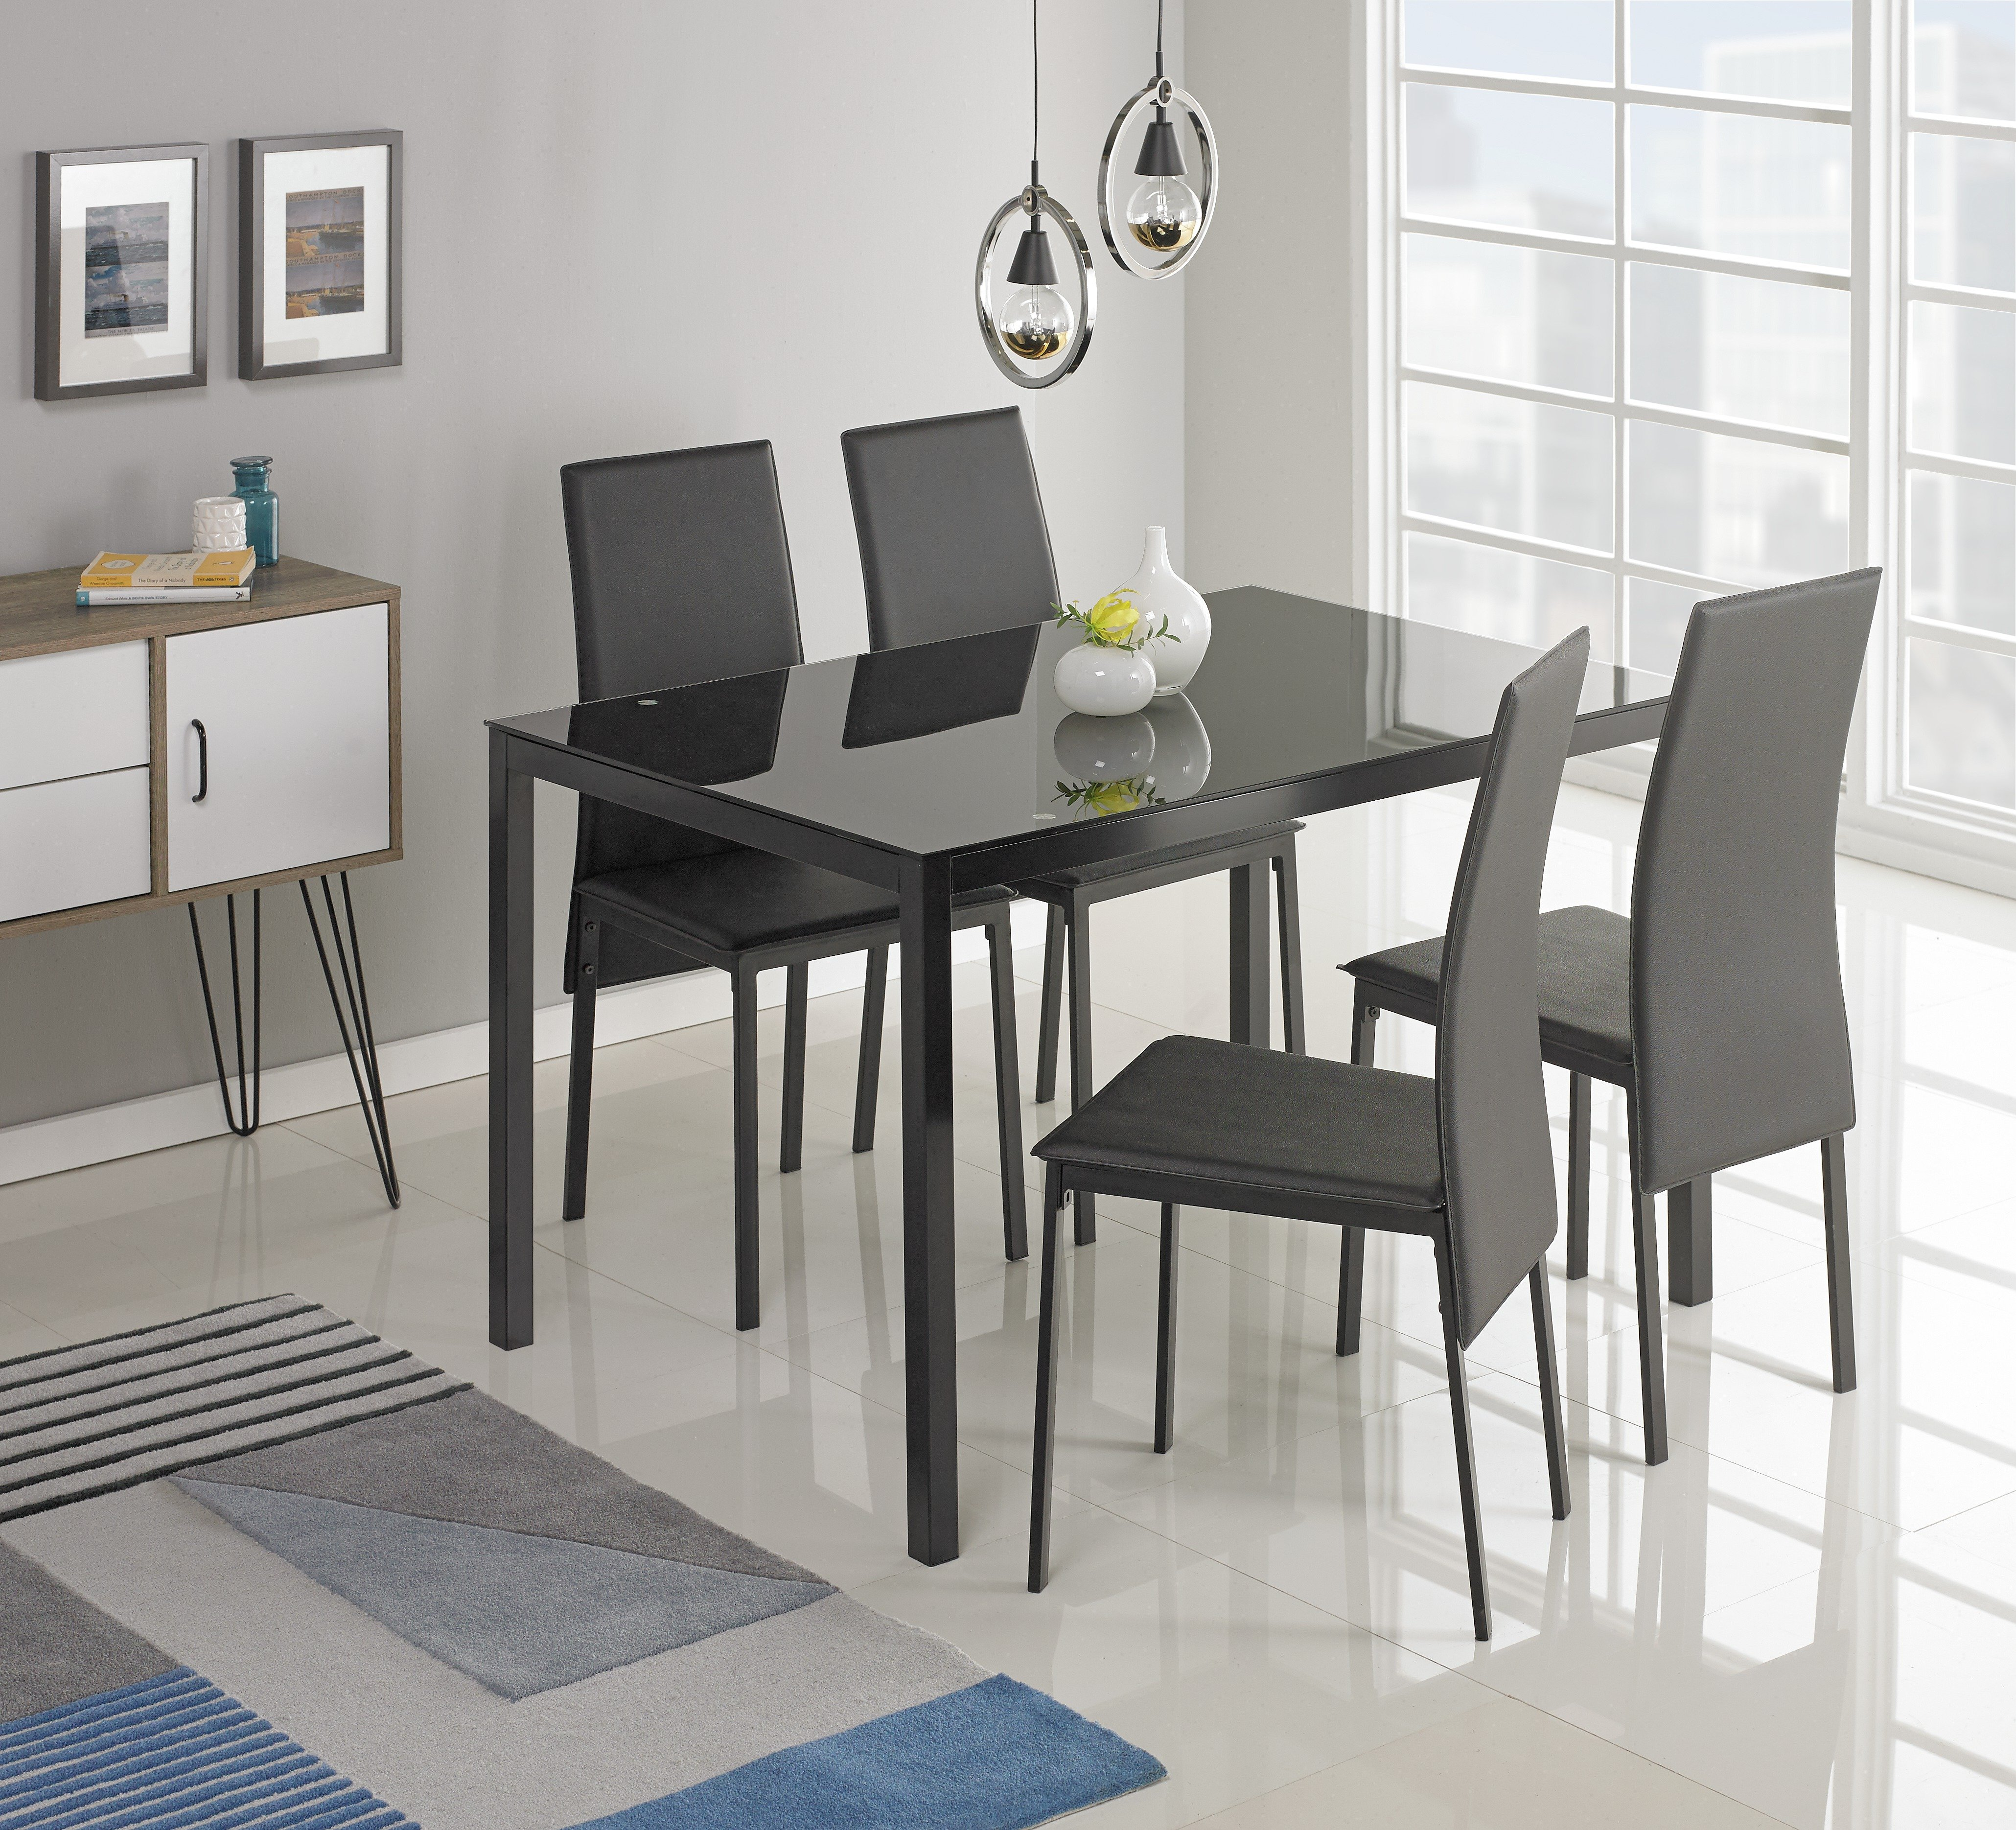 Glass Dining Table buy hygena lido glass dining table & 4 chairs - black at argos.co